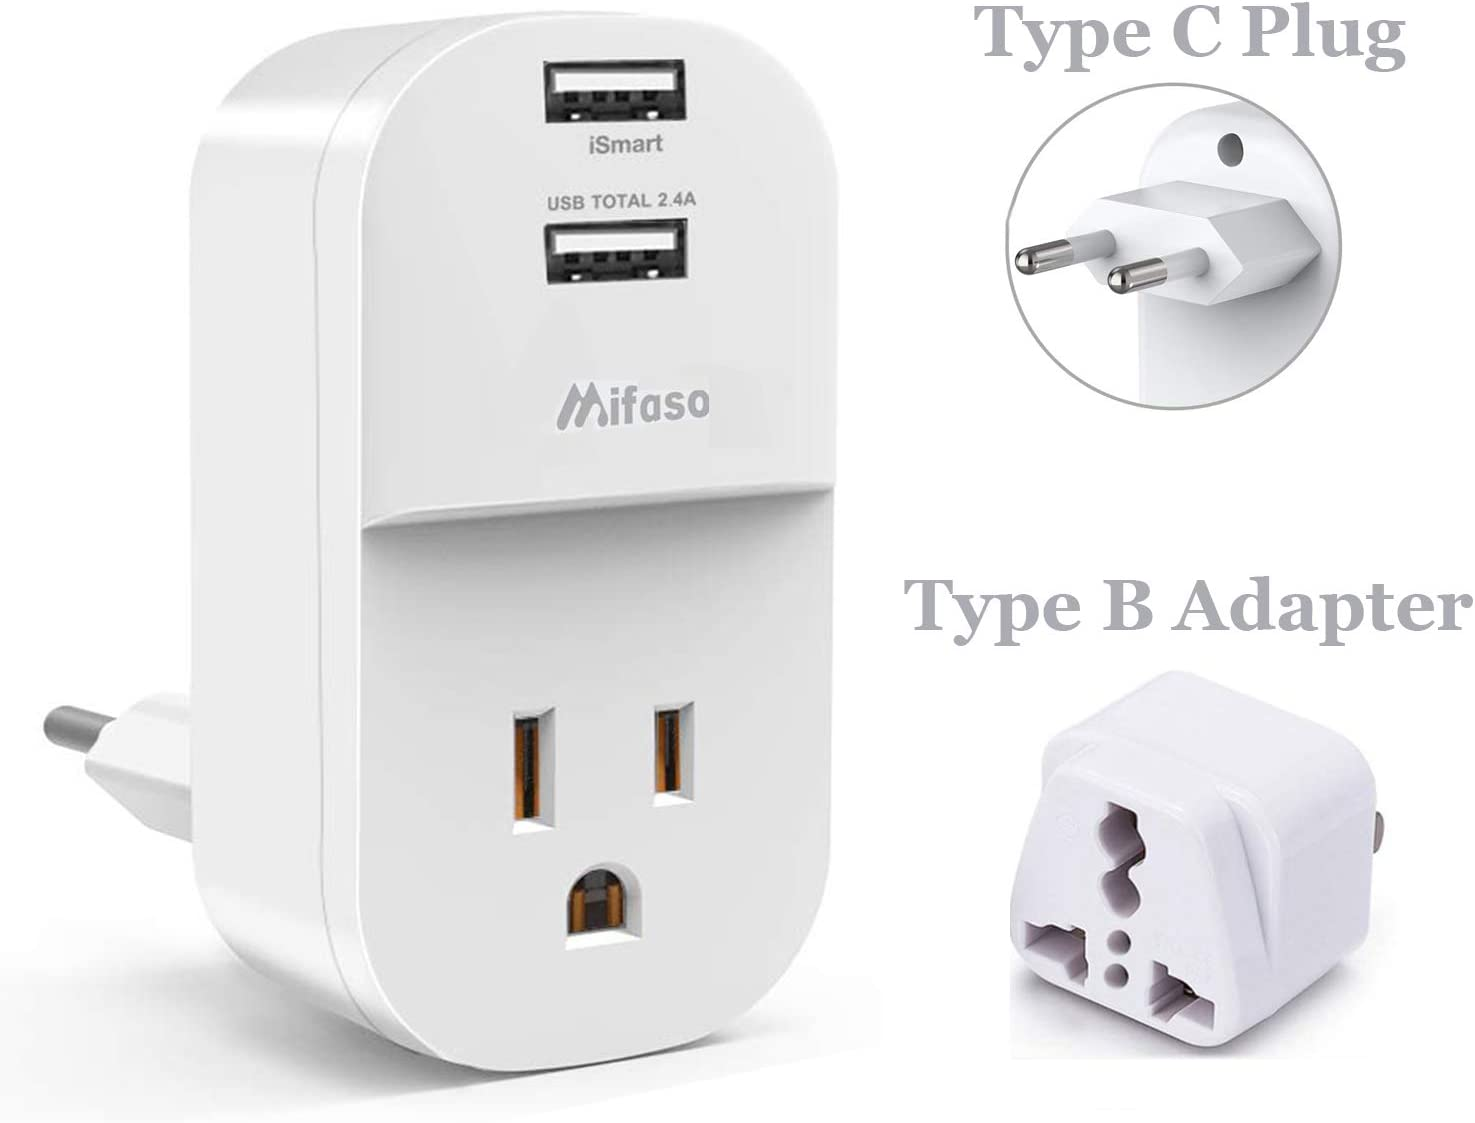 Mini Type C EU Adapter for Italy France Finland Spain Germany Sweden Greece US Charger Plug for Home Universal Adapter with 1 AC Outlet 2 USB Ports European Adapter US to Europe Travel Plug Adapter